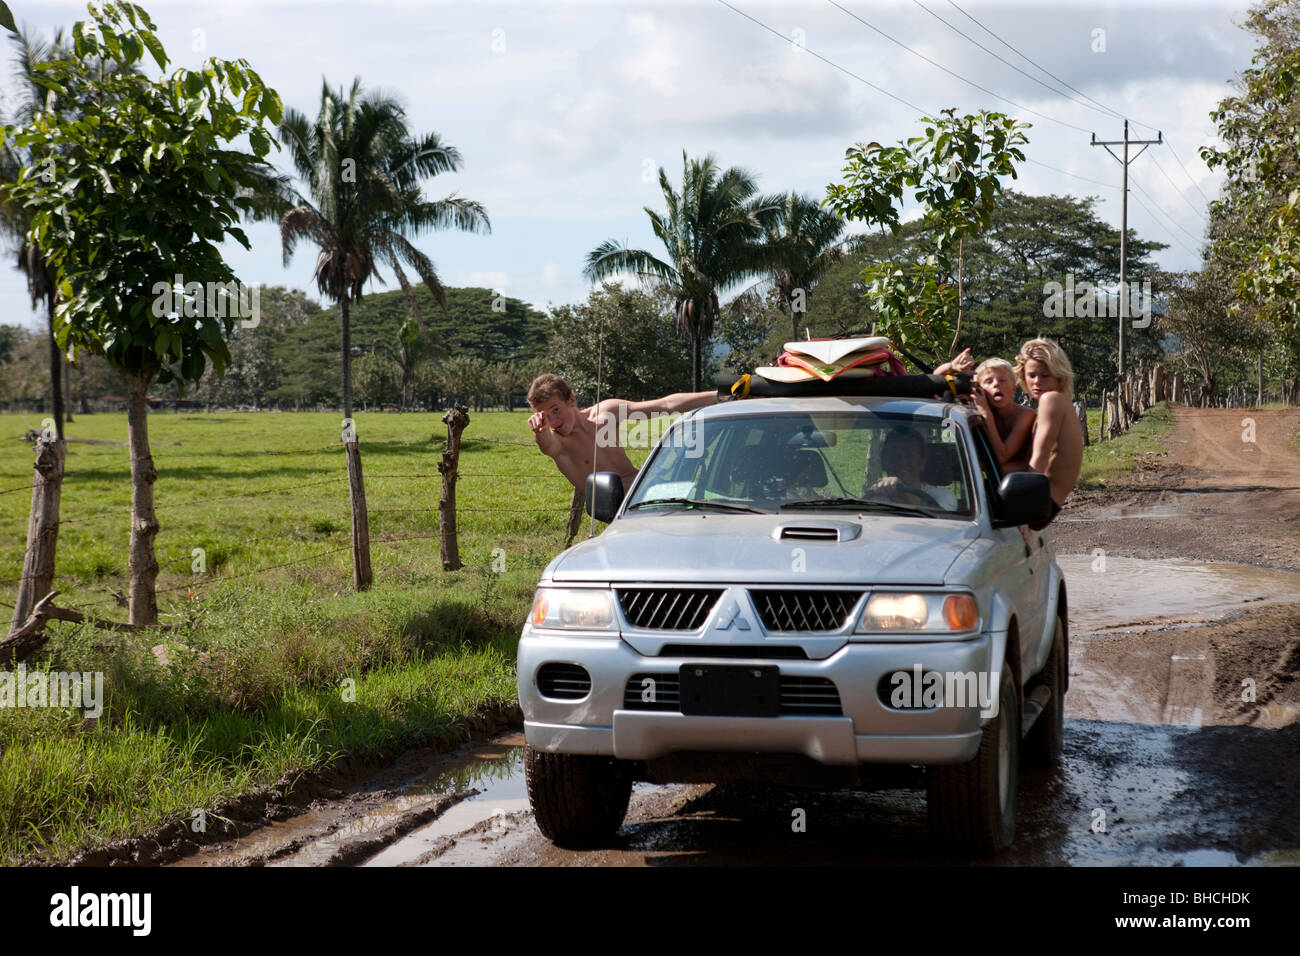 Driving along an unpaved road in Costa Rica - Stock Image